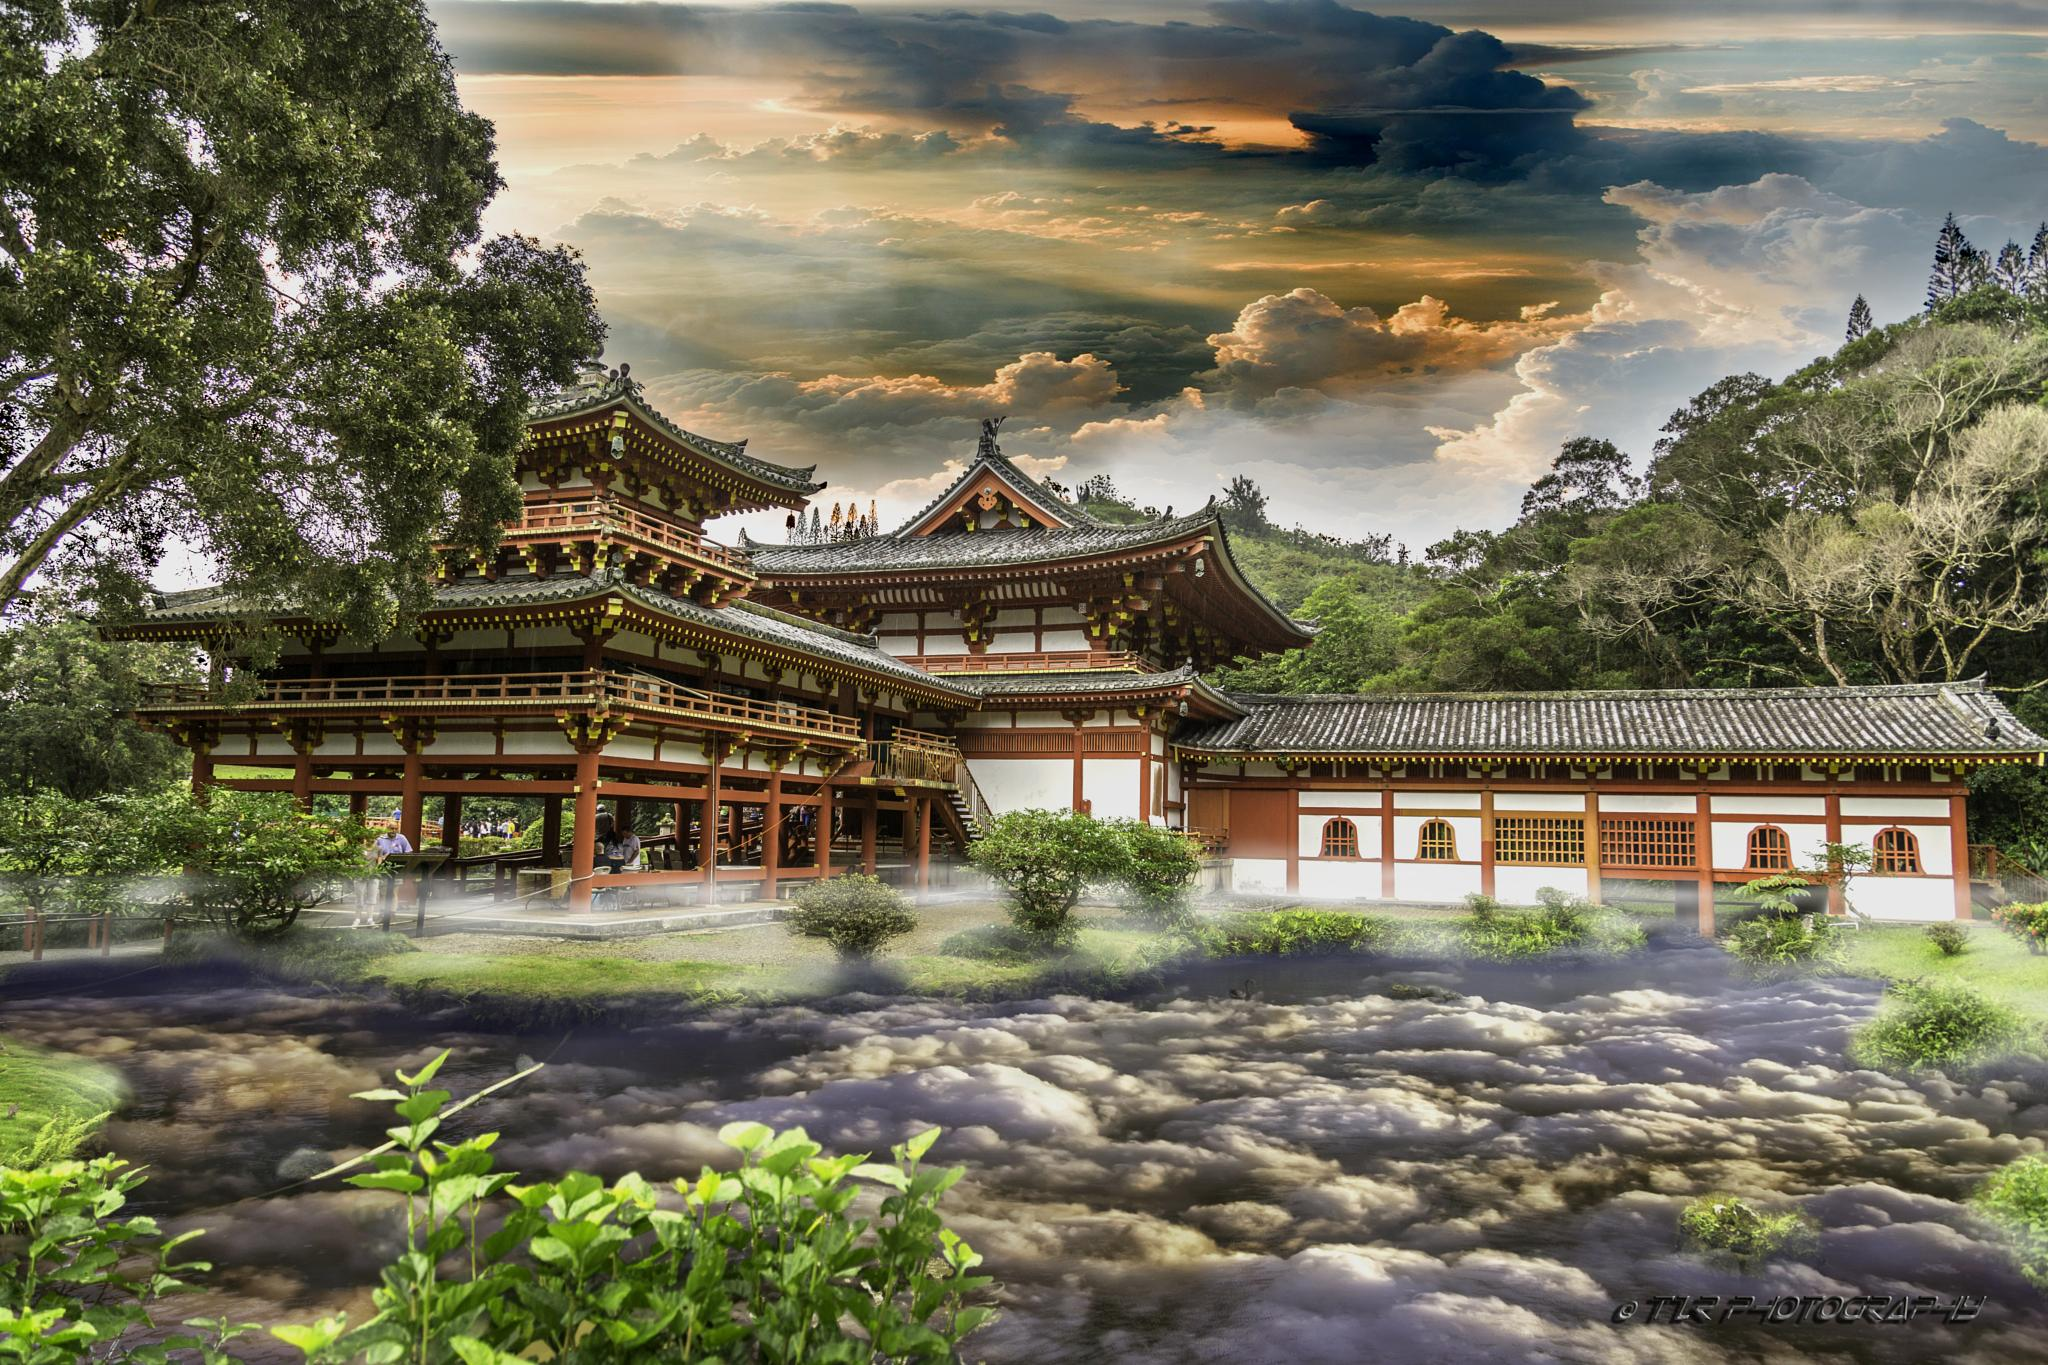 Temple Amongst The Clouds by Tzr Photography